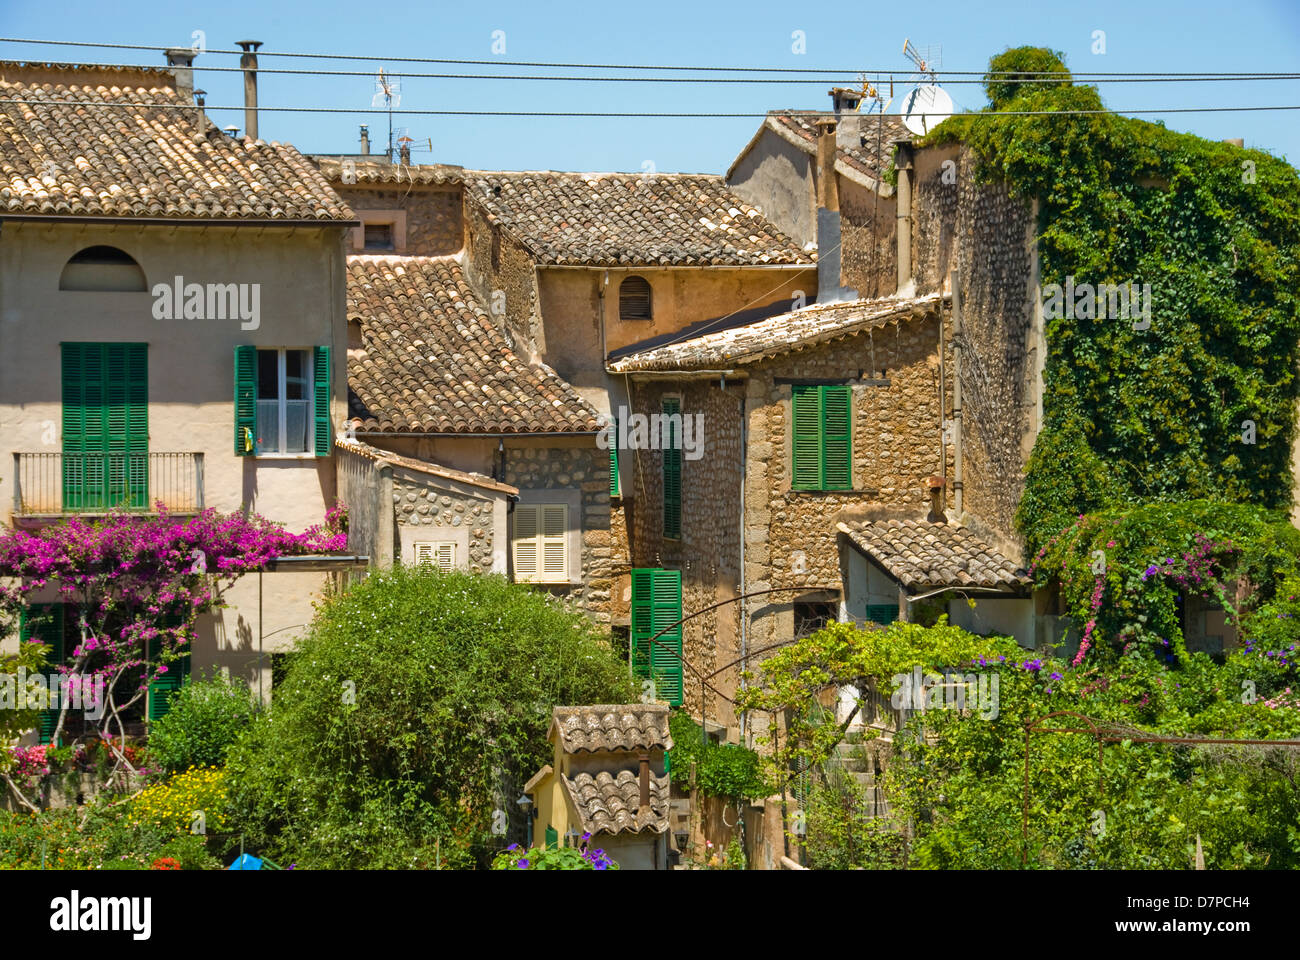 Beautiful Country House Typical Farmhouses In Mallorca Soller Typische Landhaeuser Auf